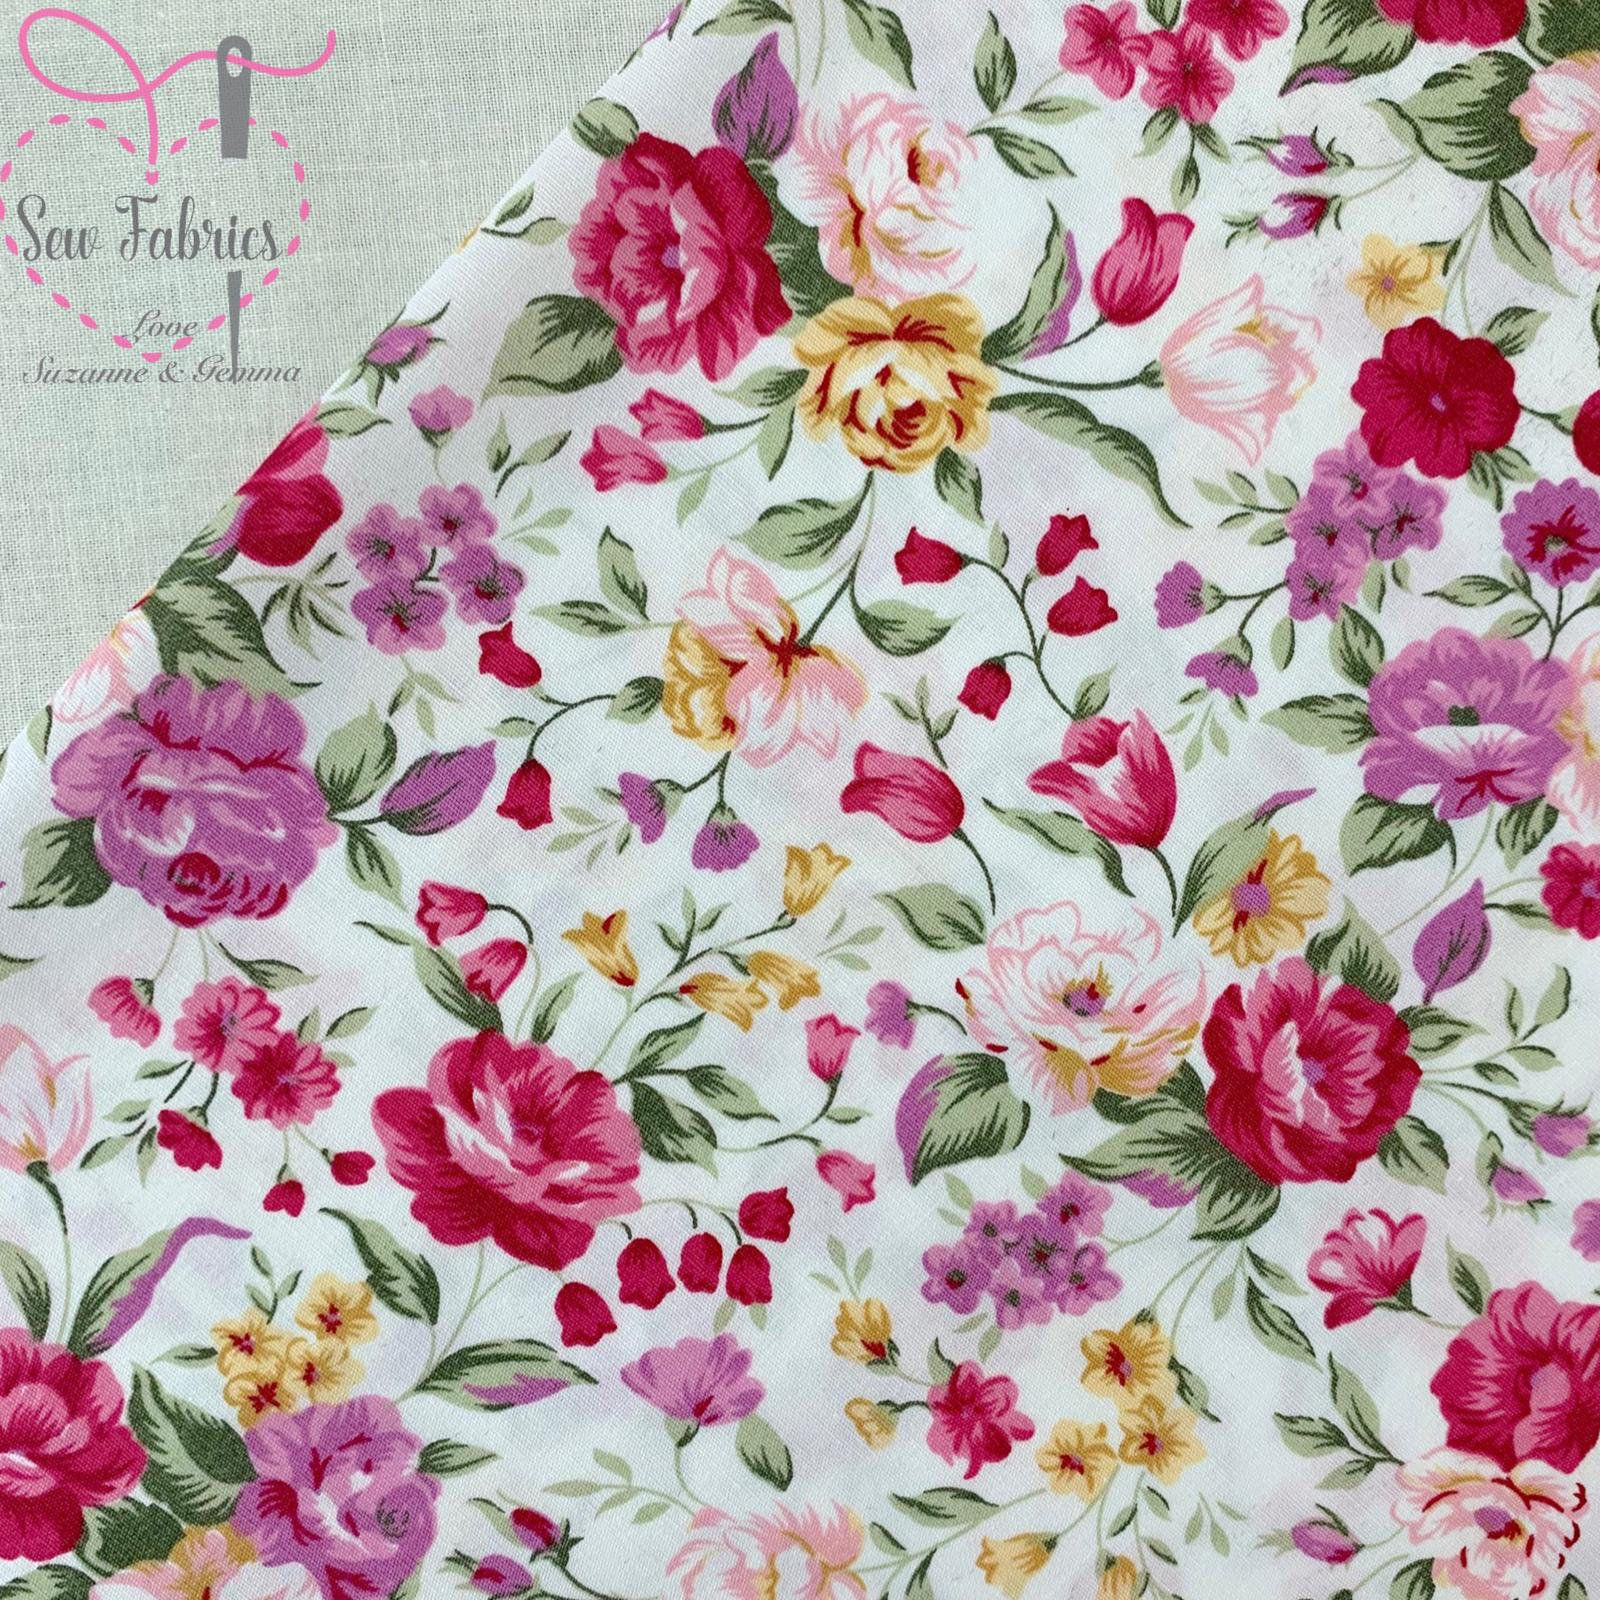 100/% Cotton Poplin Fabric Rose /& Hubble Blooming Flowers Floral